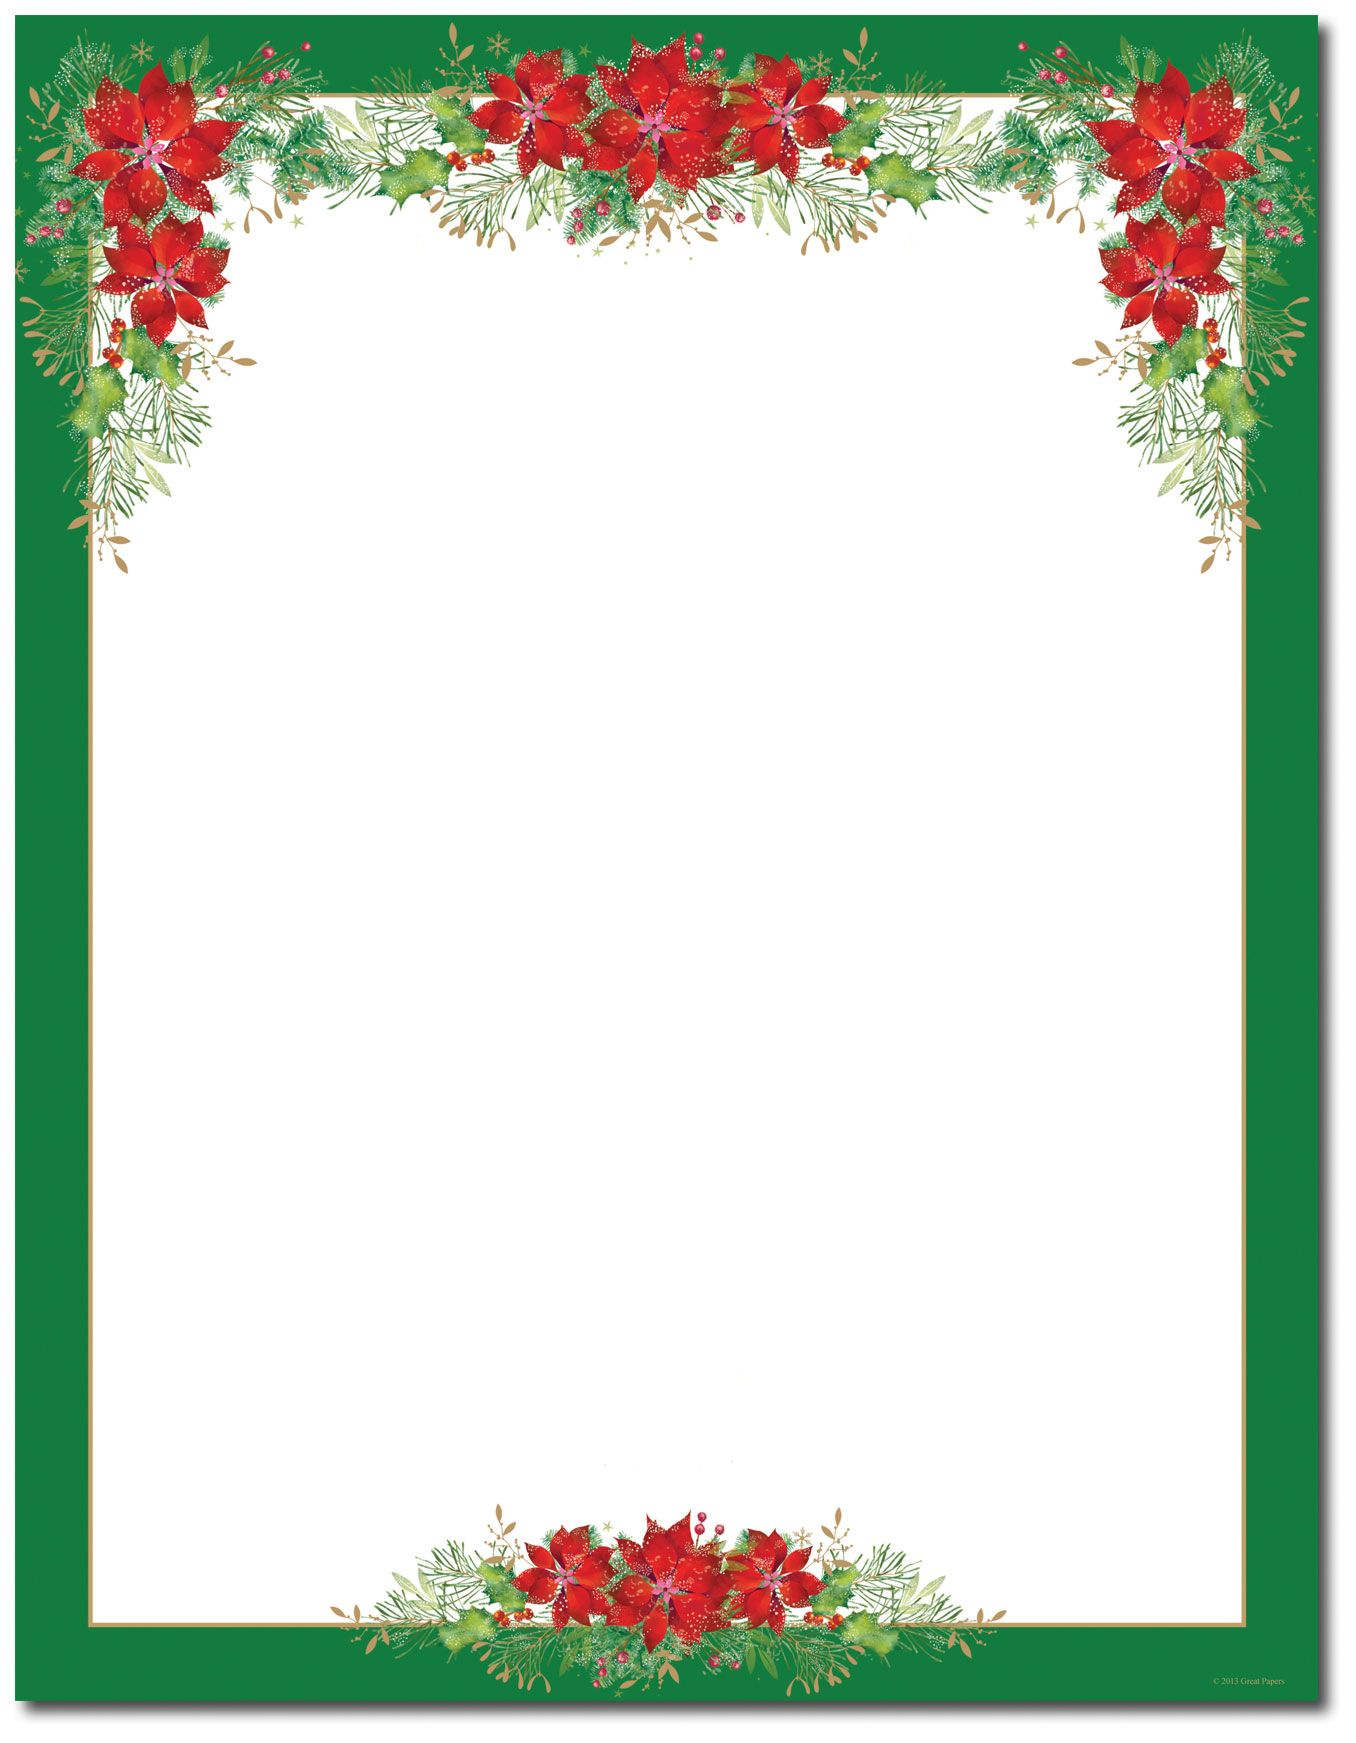 Valance letterhead holiday papers. Free christmas poinsettia border clipart